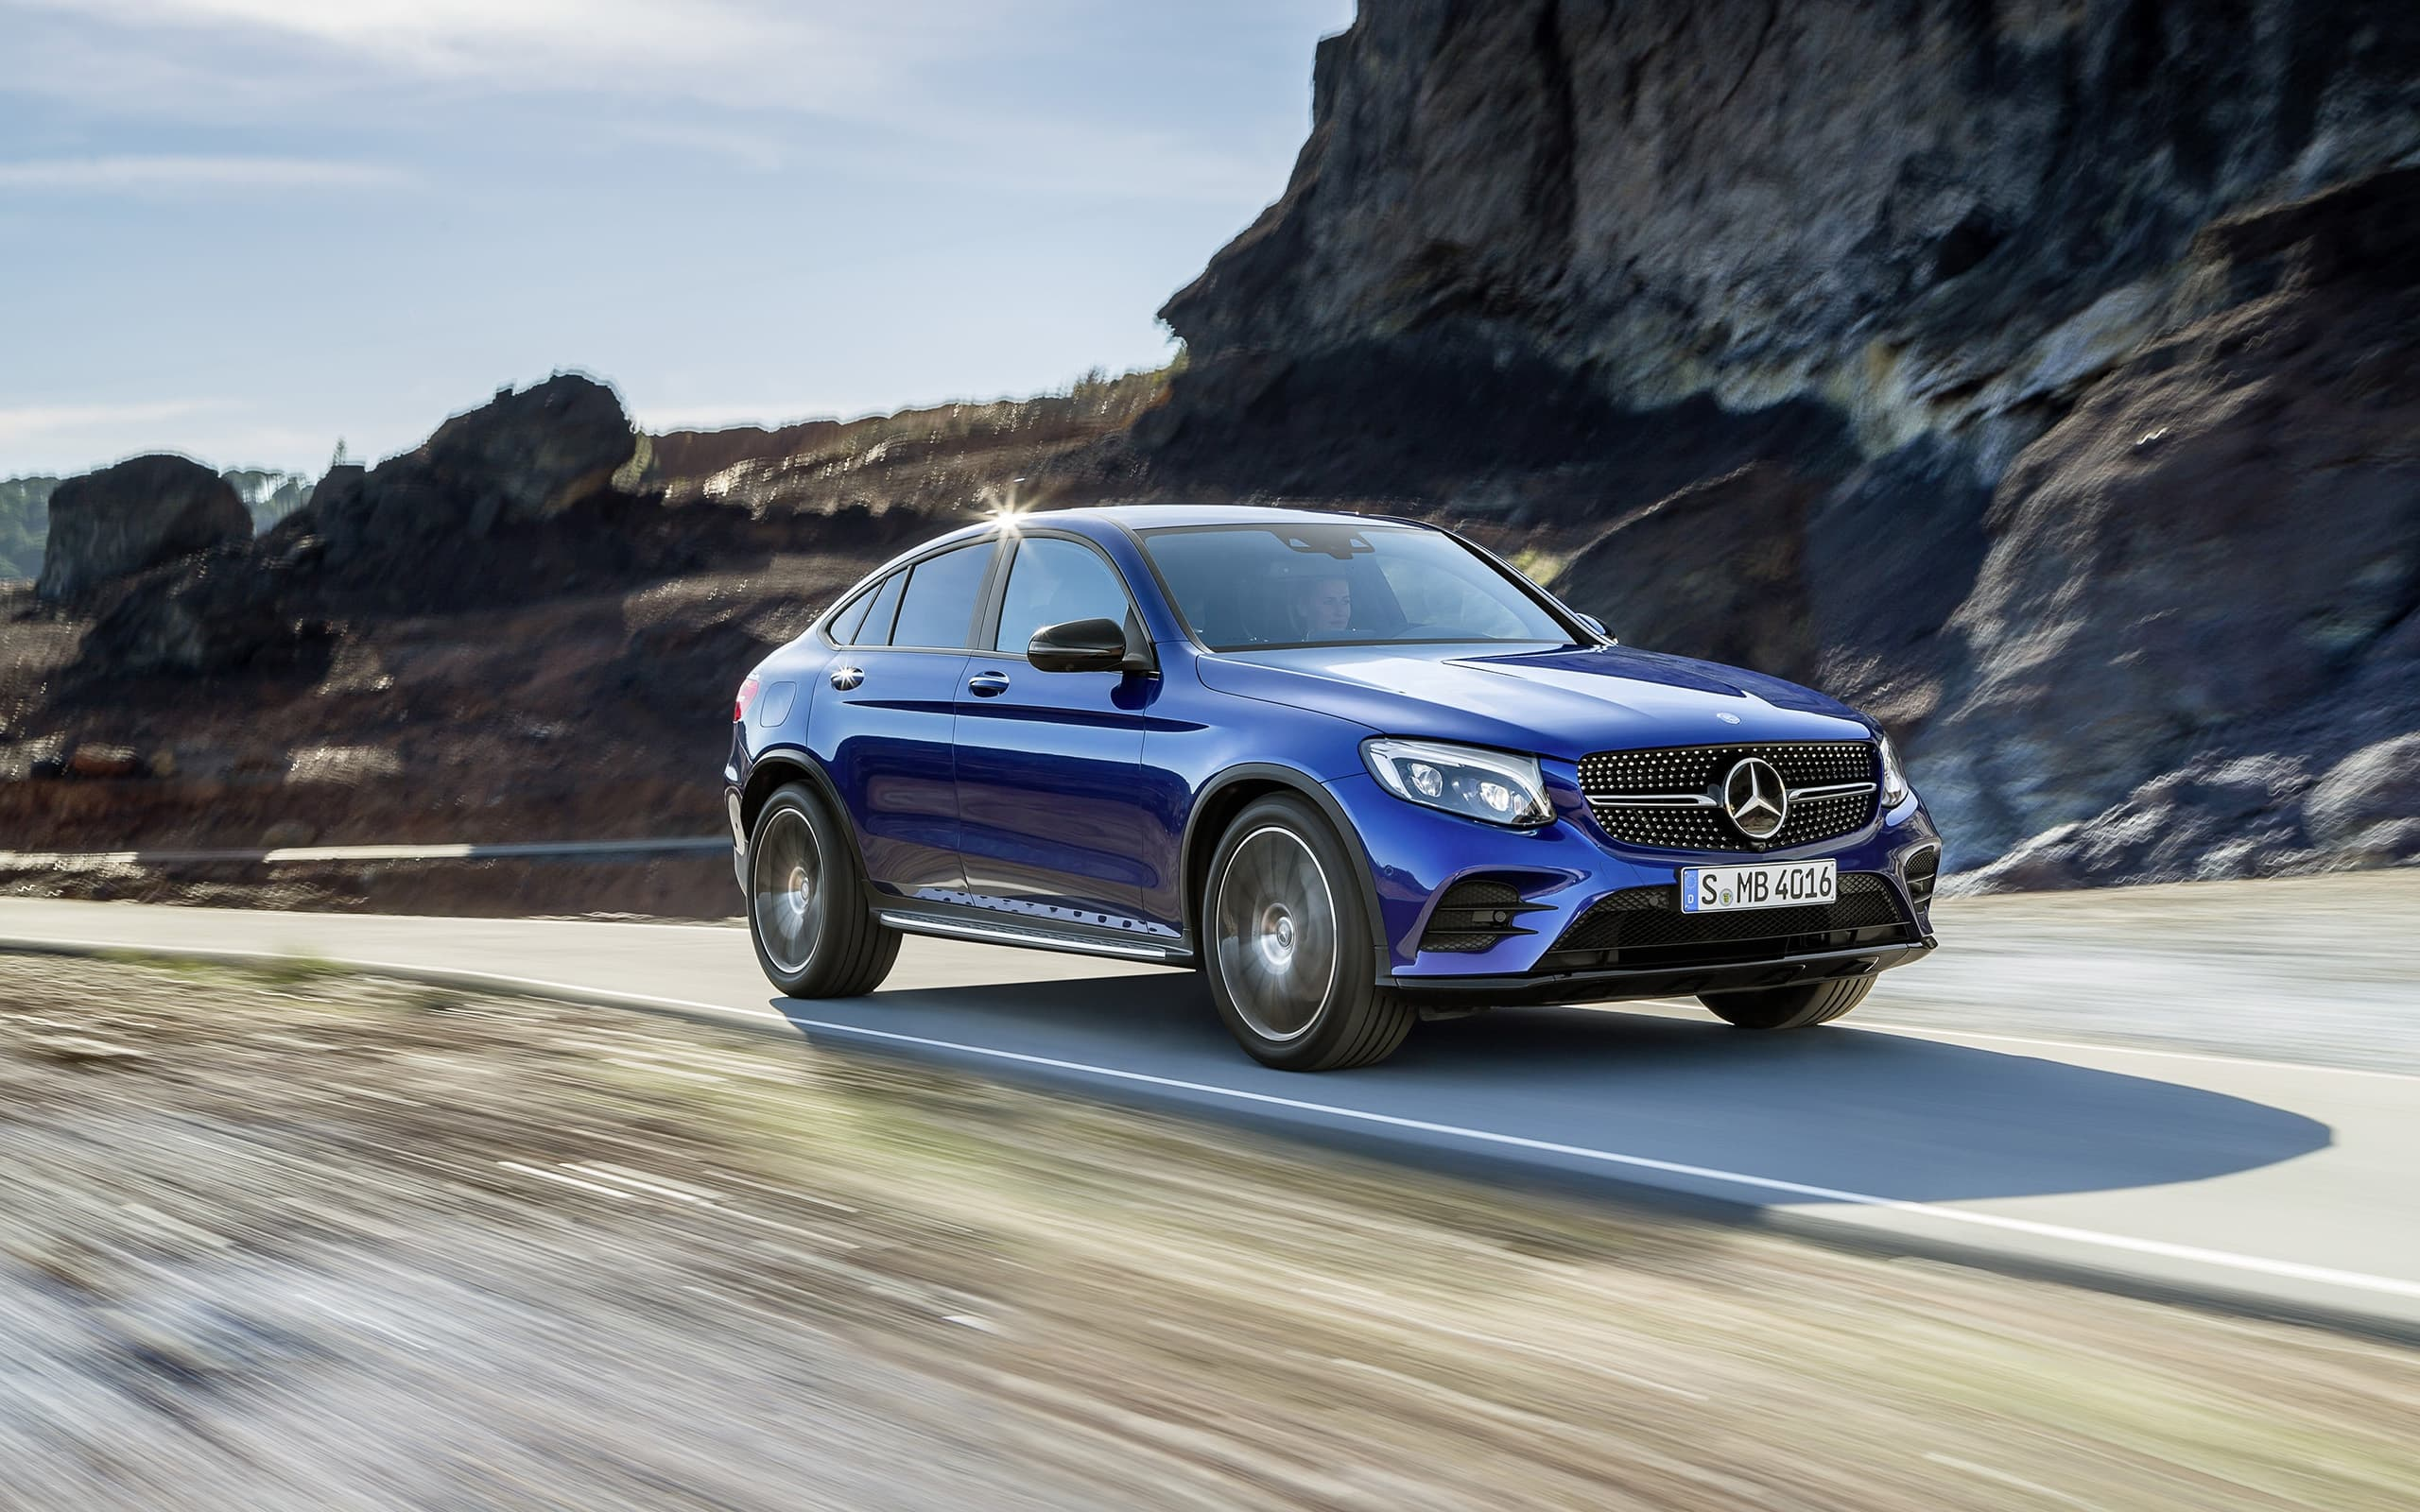 2016 Mercedes Benz Glc Coupe Wallpapers Images High Resolution